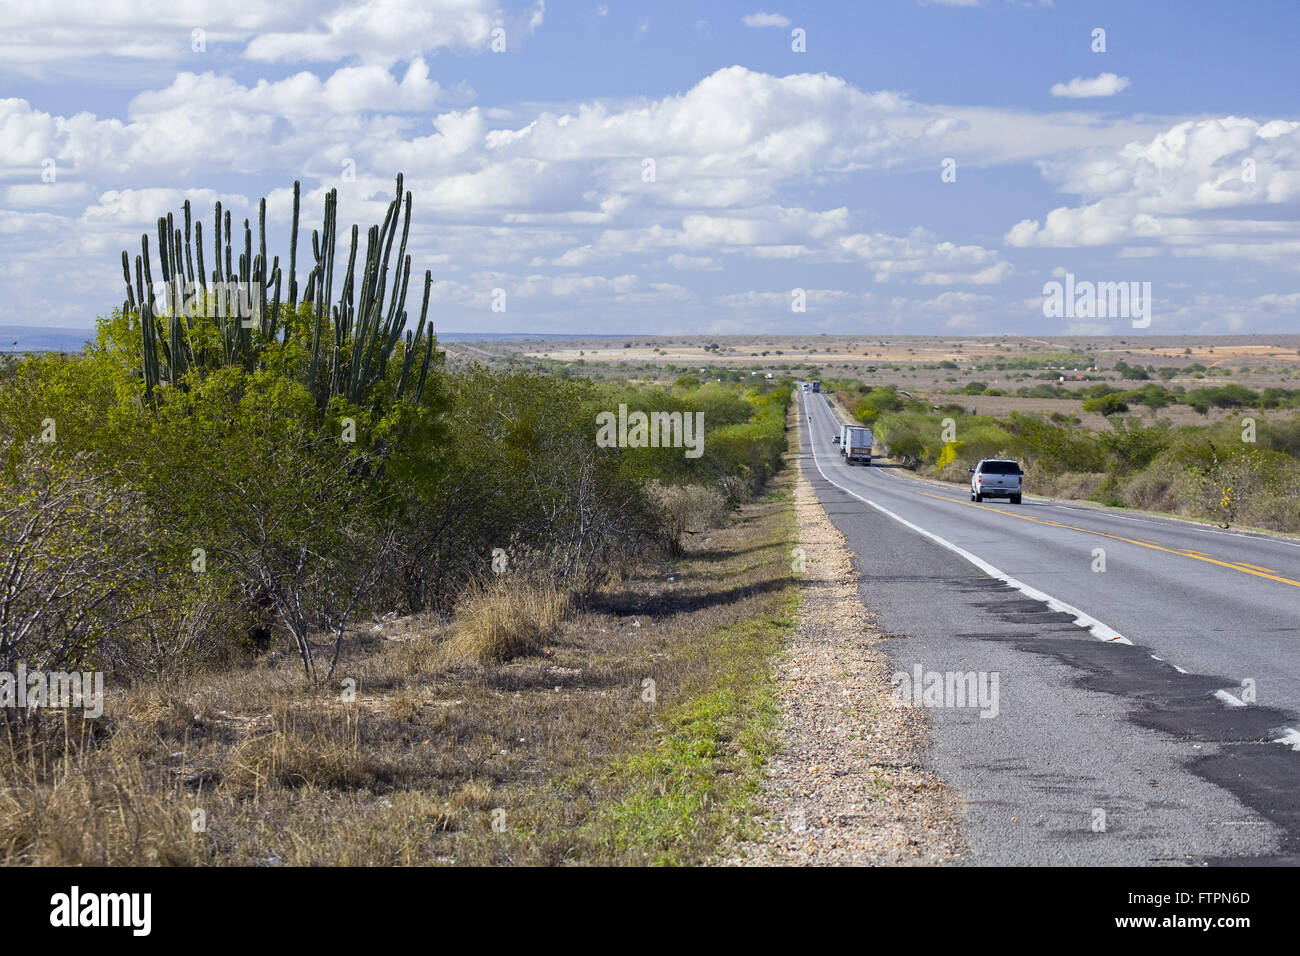 BR-116 in Bahia - region affected by drought - Stock Image